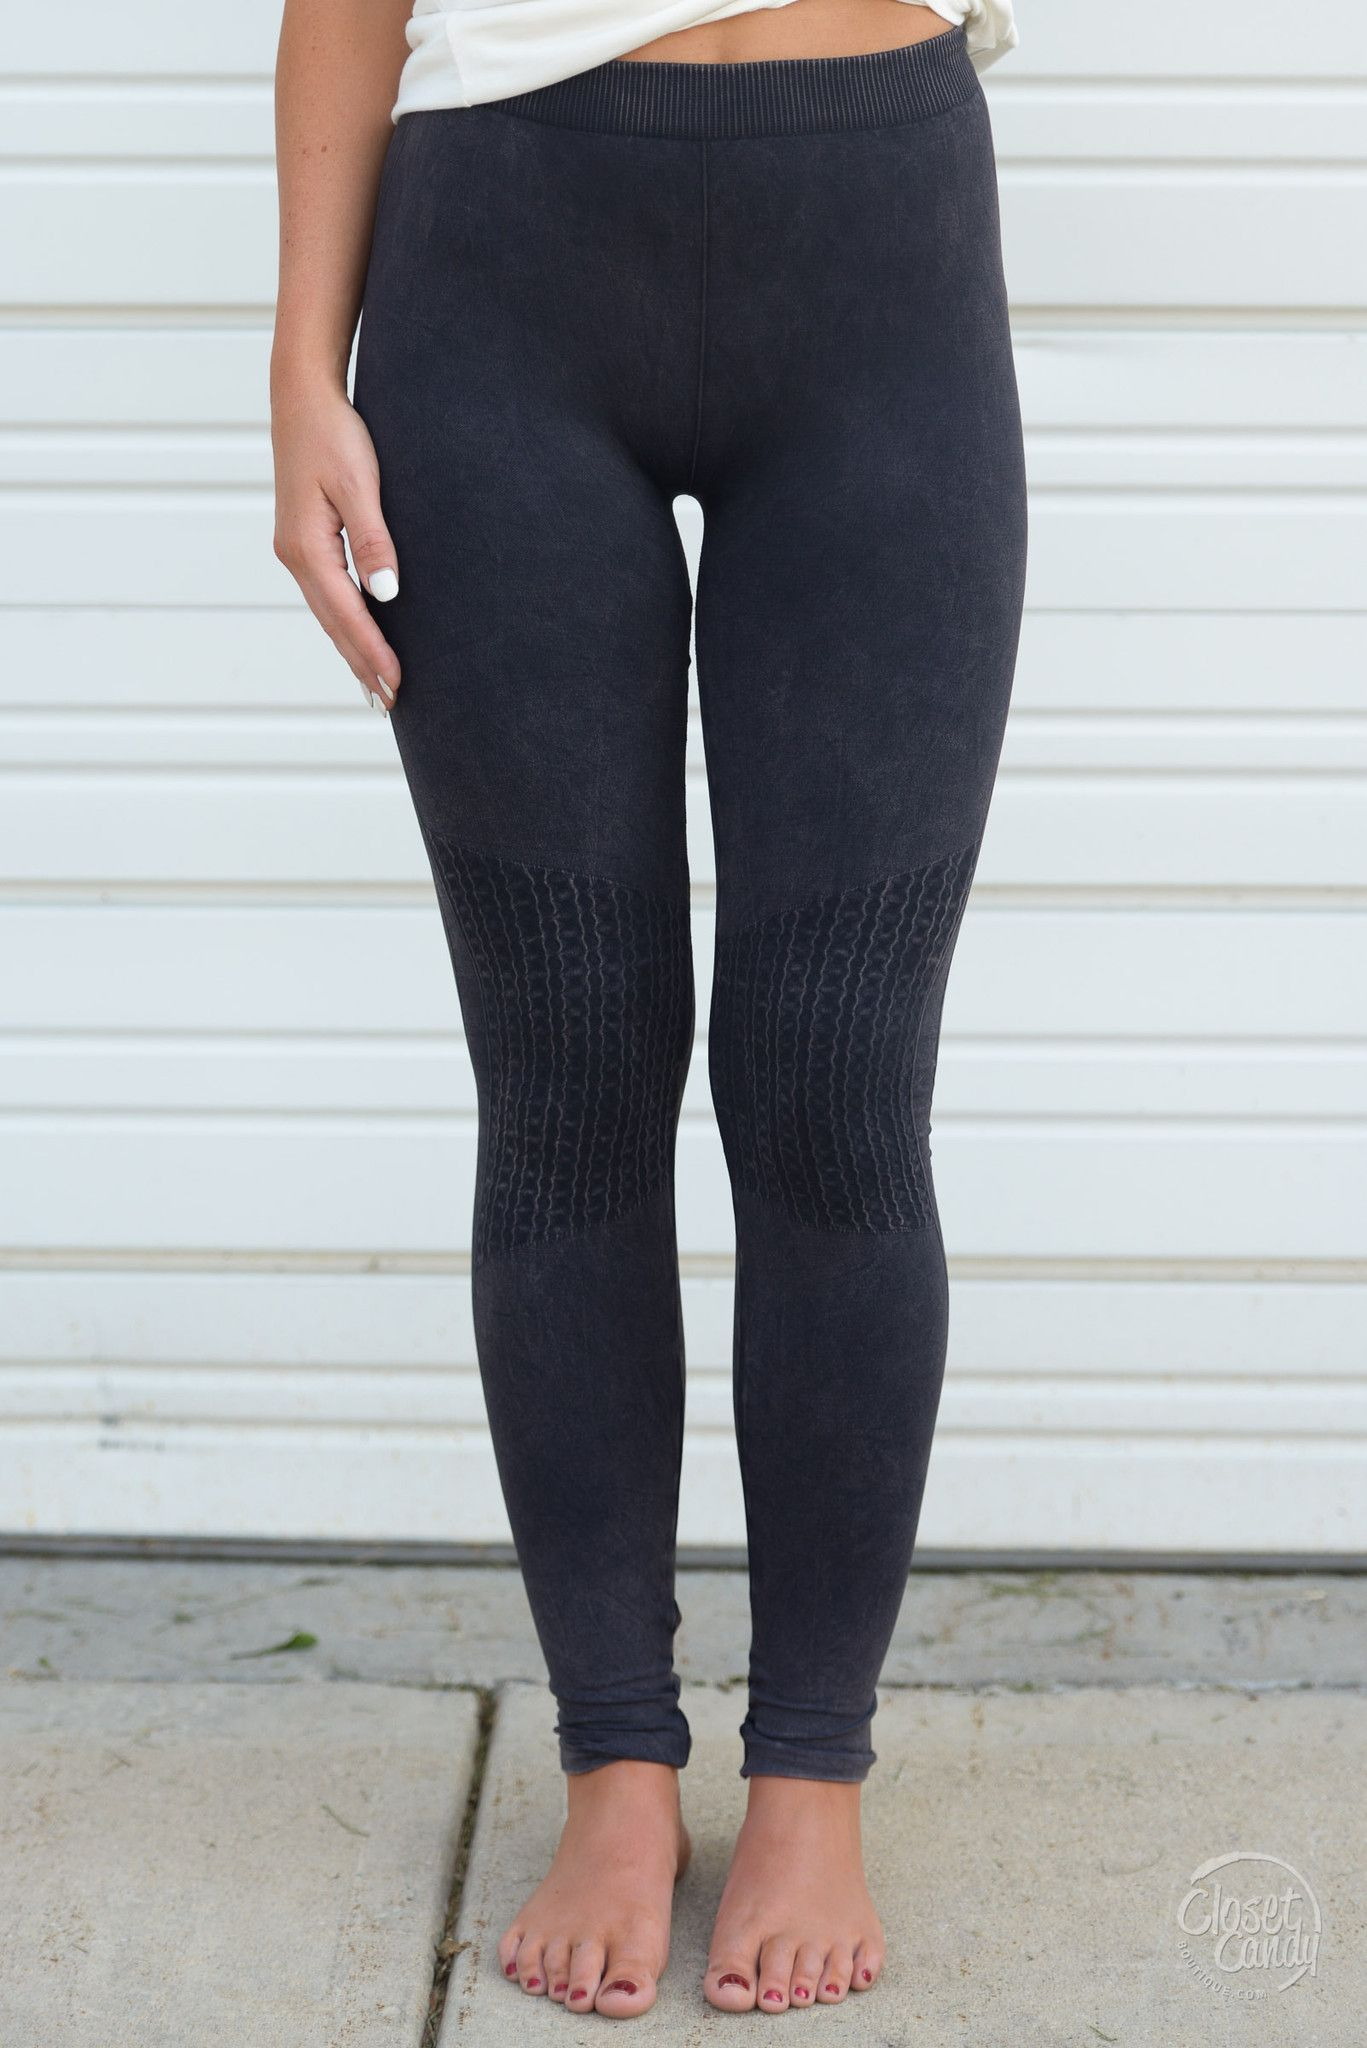 All About The Details Leggings